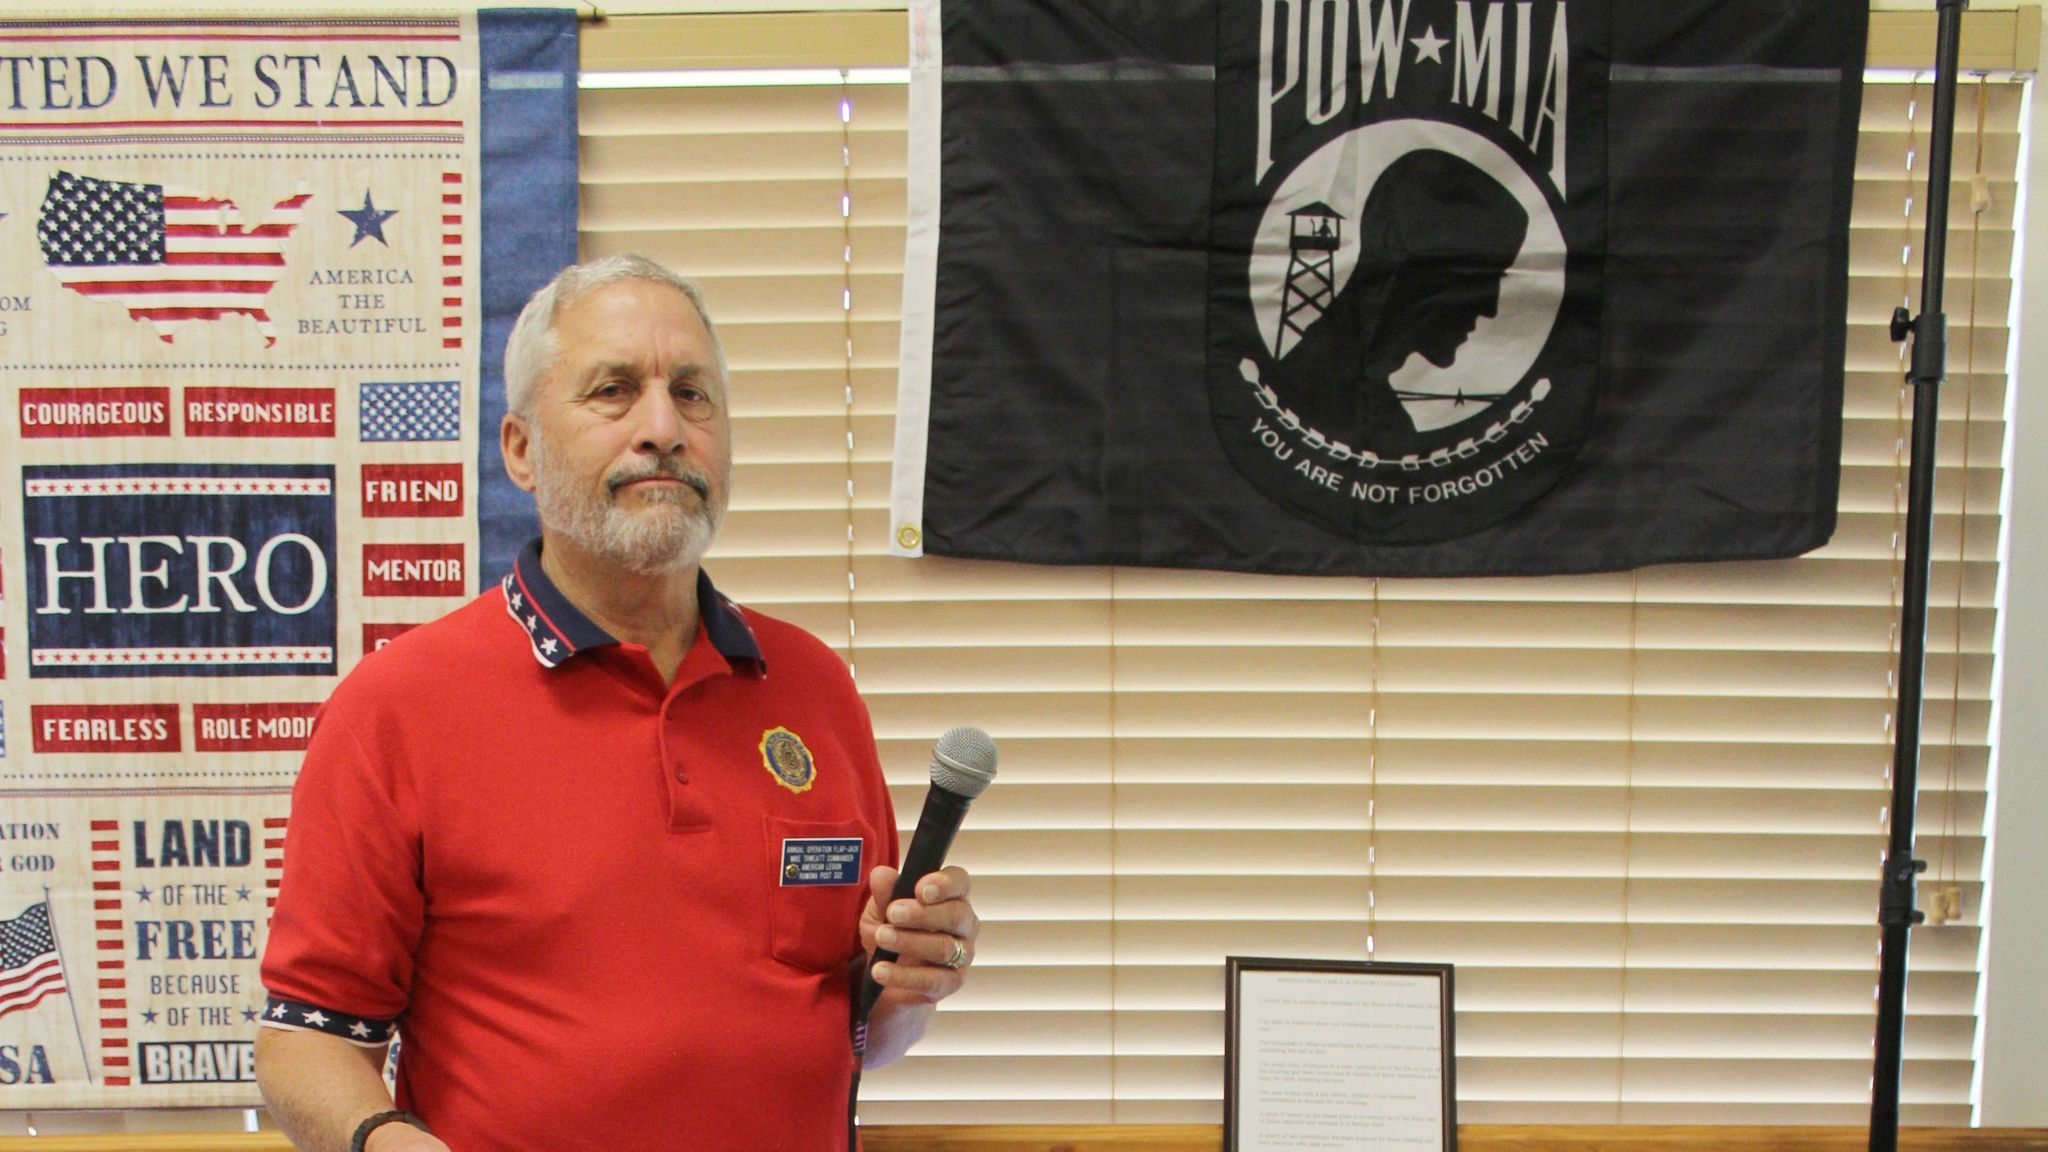 American Legion Post 332 Cmdr. Michael Thweatt explains the meaning of the items on the Missing Man POW/MIA Table.